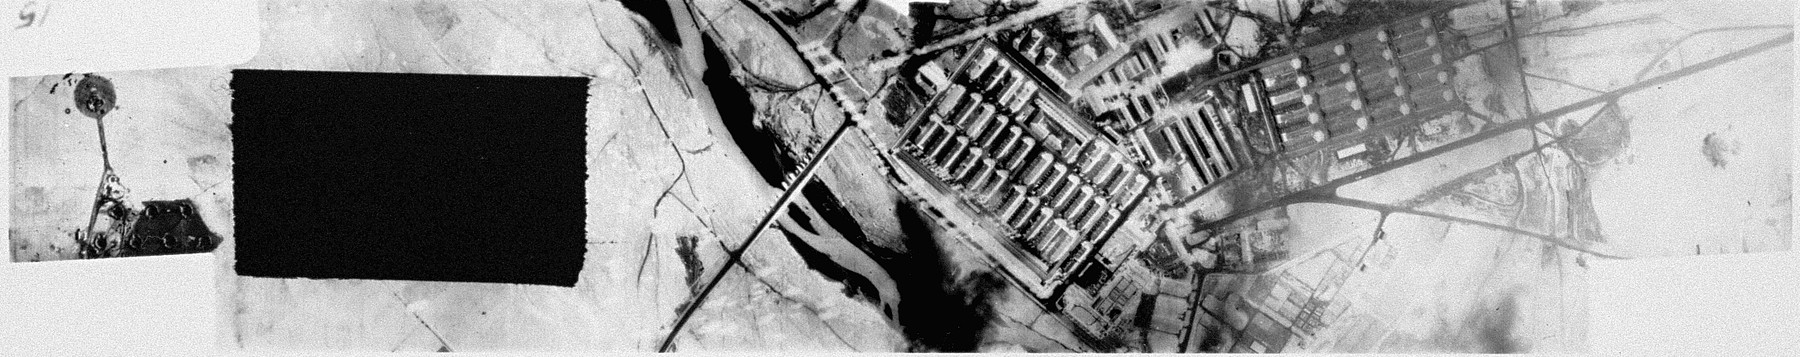 An aerial reconnaissance photograph showing Auschwitz I  including the barracks and administration building.